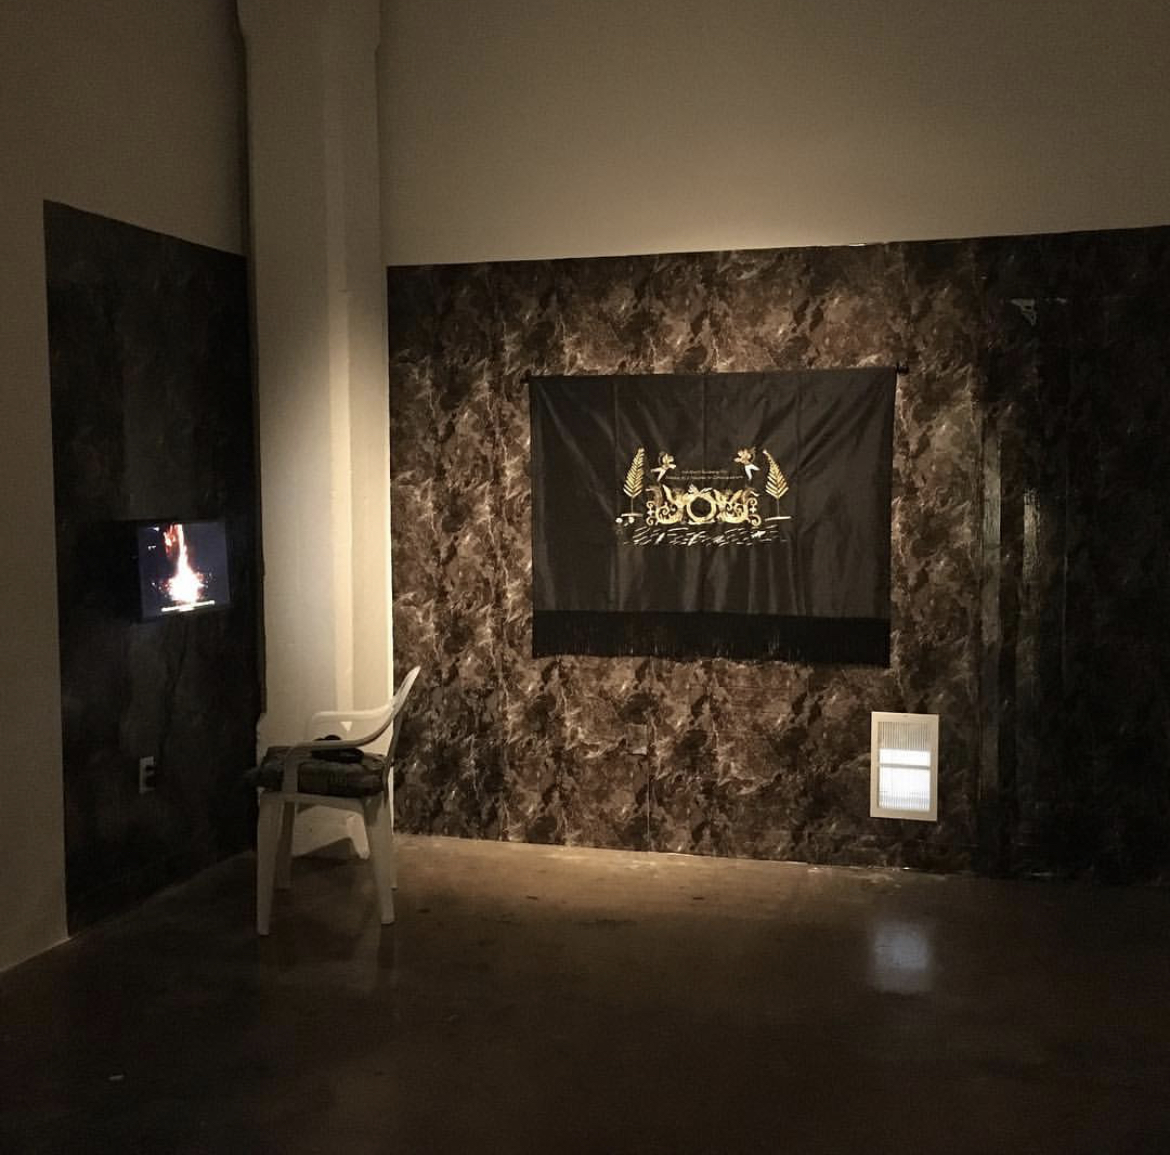 Installation view, Uncanny Gardening II, wallpaper, gesso resin and graphite on a wood panel, gold thread on silk, single channel video, plastic chair, embroidered pillow